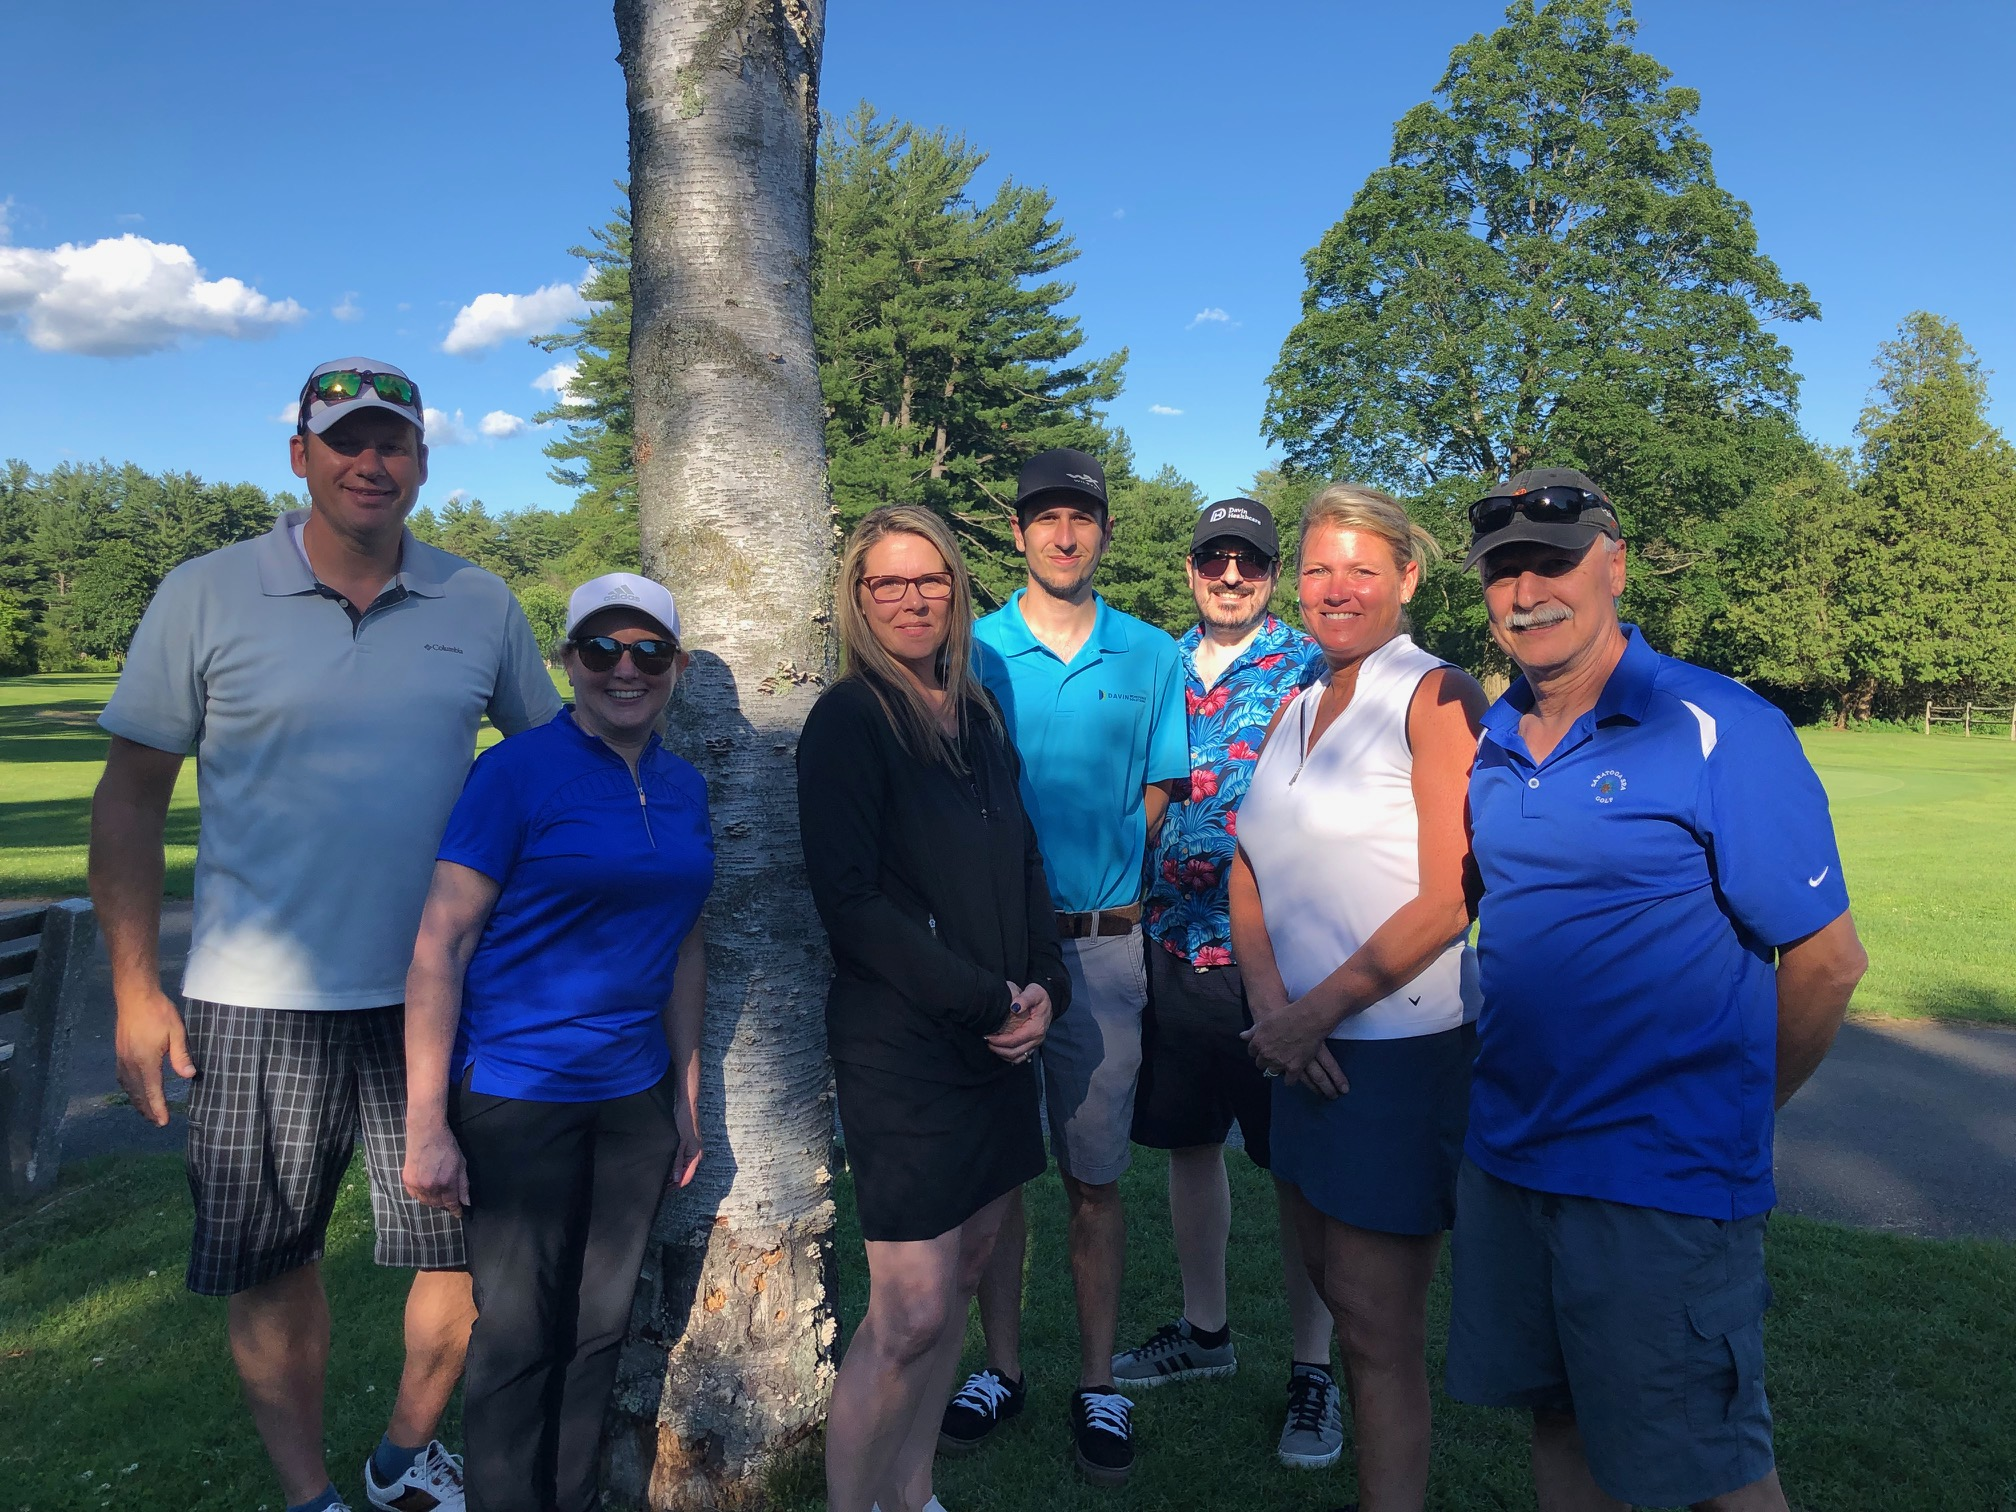 The Davin Healthcare Team on their weekly golfing outting.